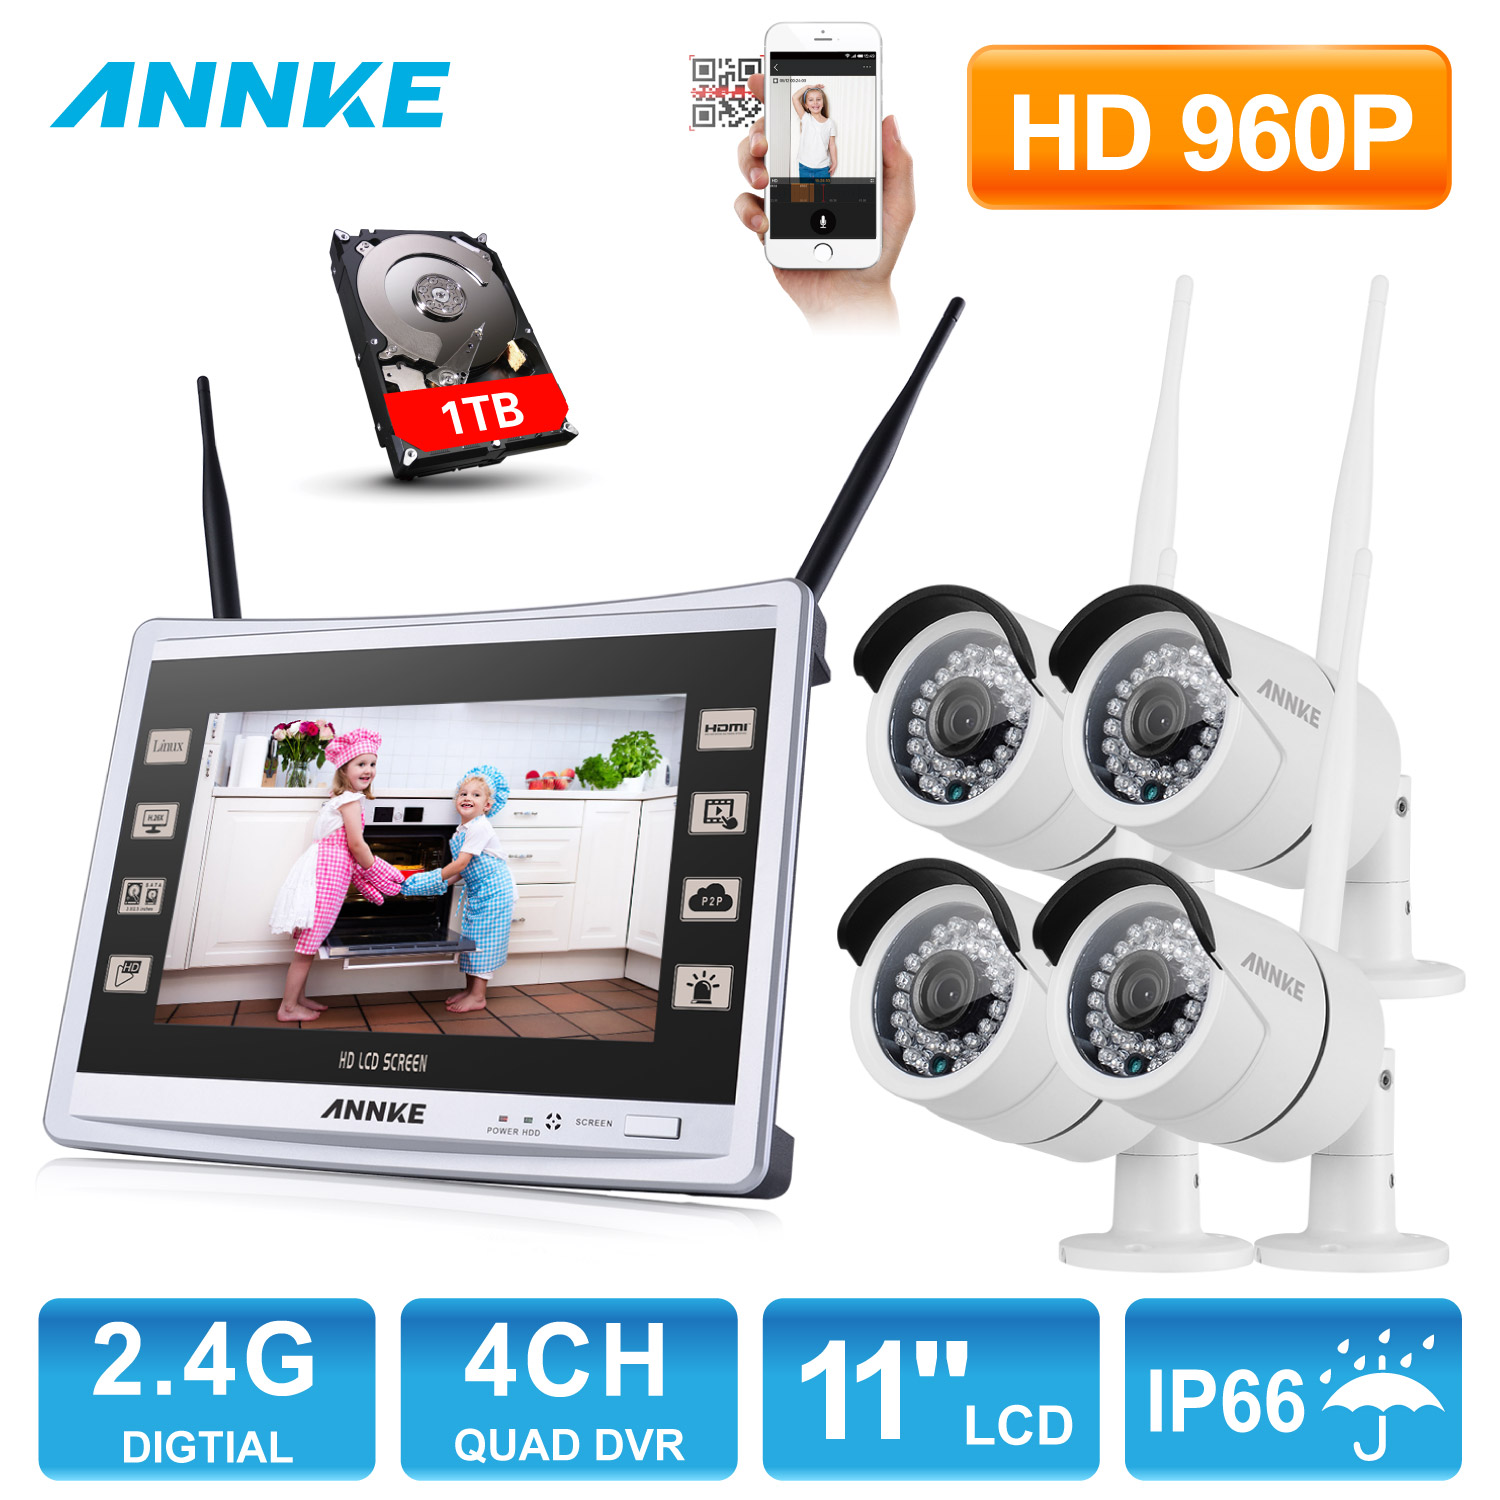 ANNKE 4CH 960P Wireless 11 Monitor NVR Outdoor IR Night Vision font b Video b font